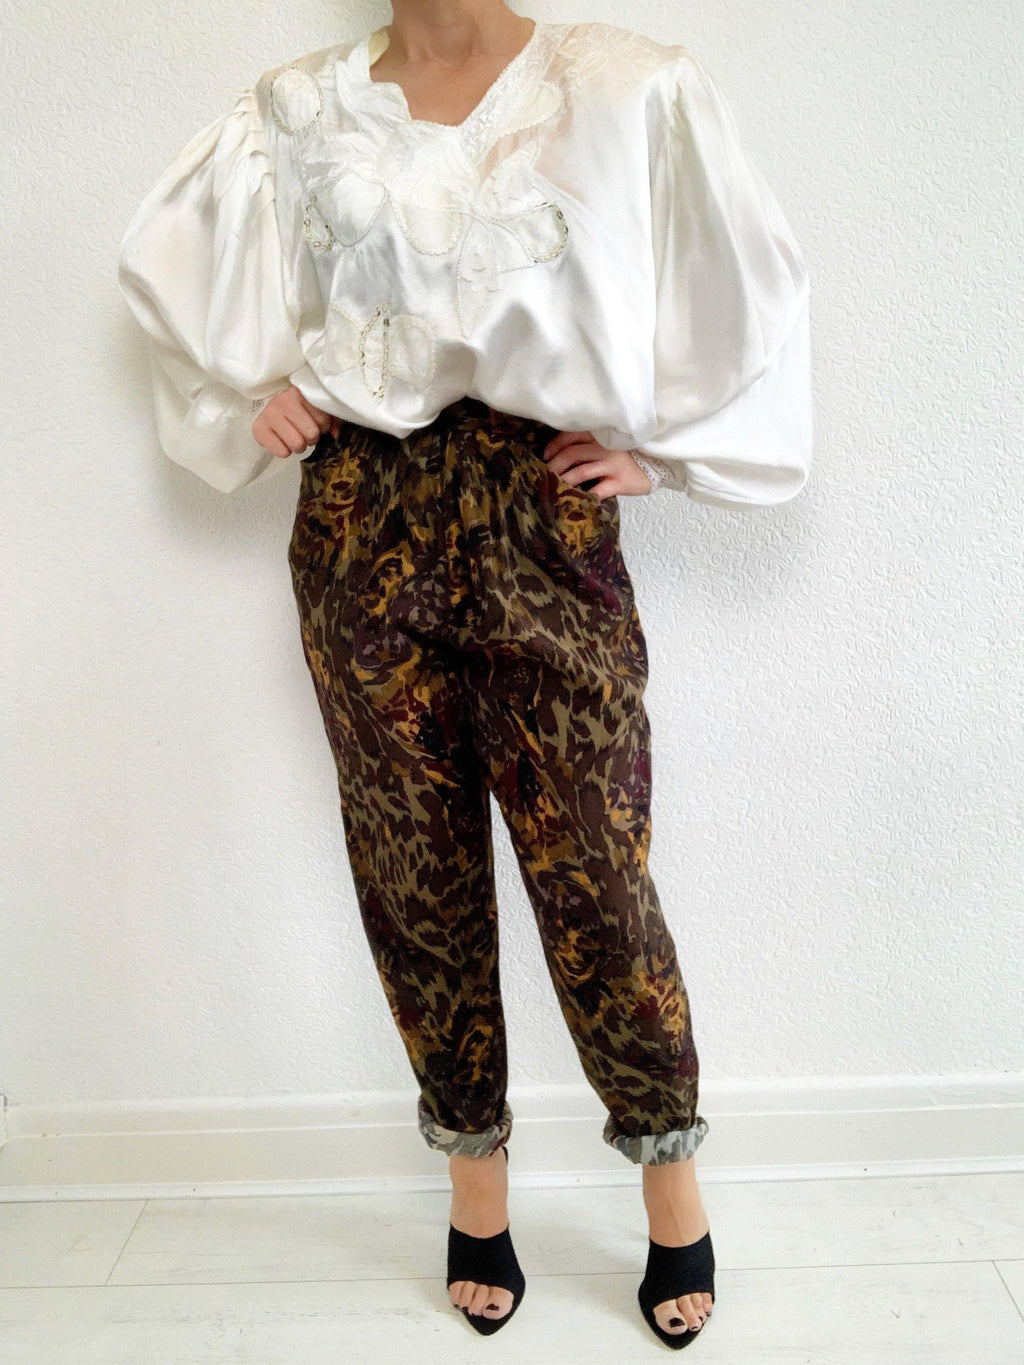 ONE OF A KIND - Vintage High Waist Tapered Animal Print Pants Trousers